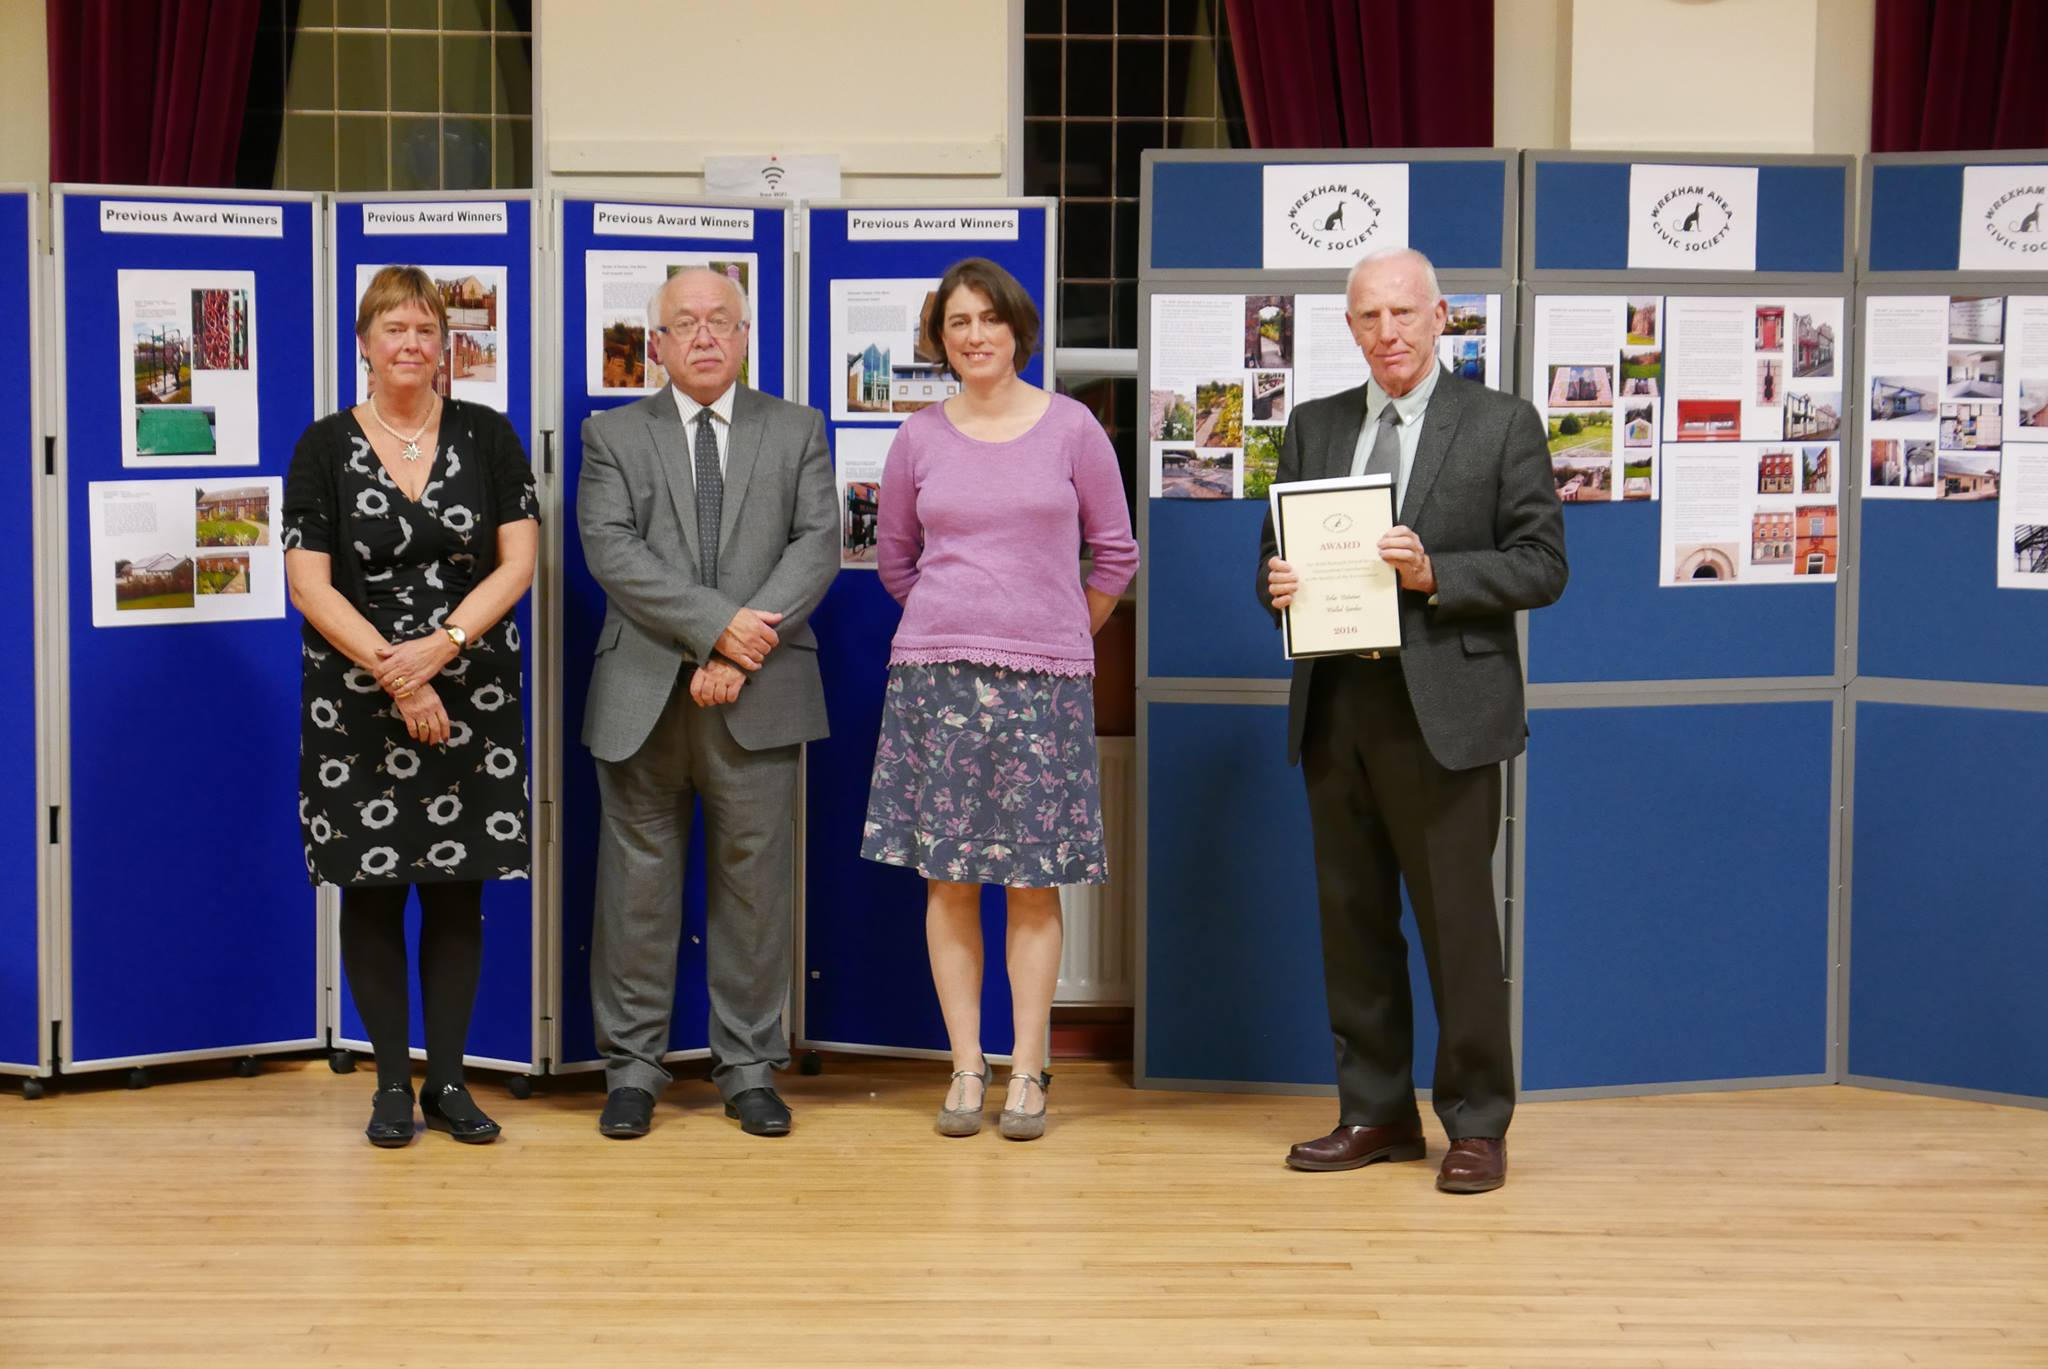 Ann, Libby and Geoff recieving the Ruth Howarth Award at the Wrexham Civic Society on Friday18th November